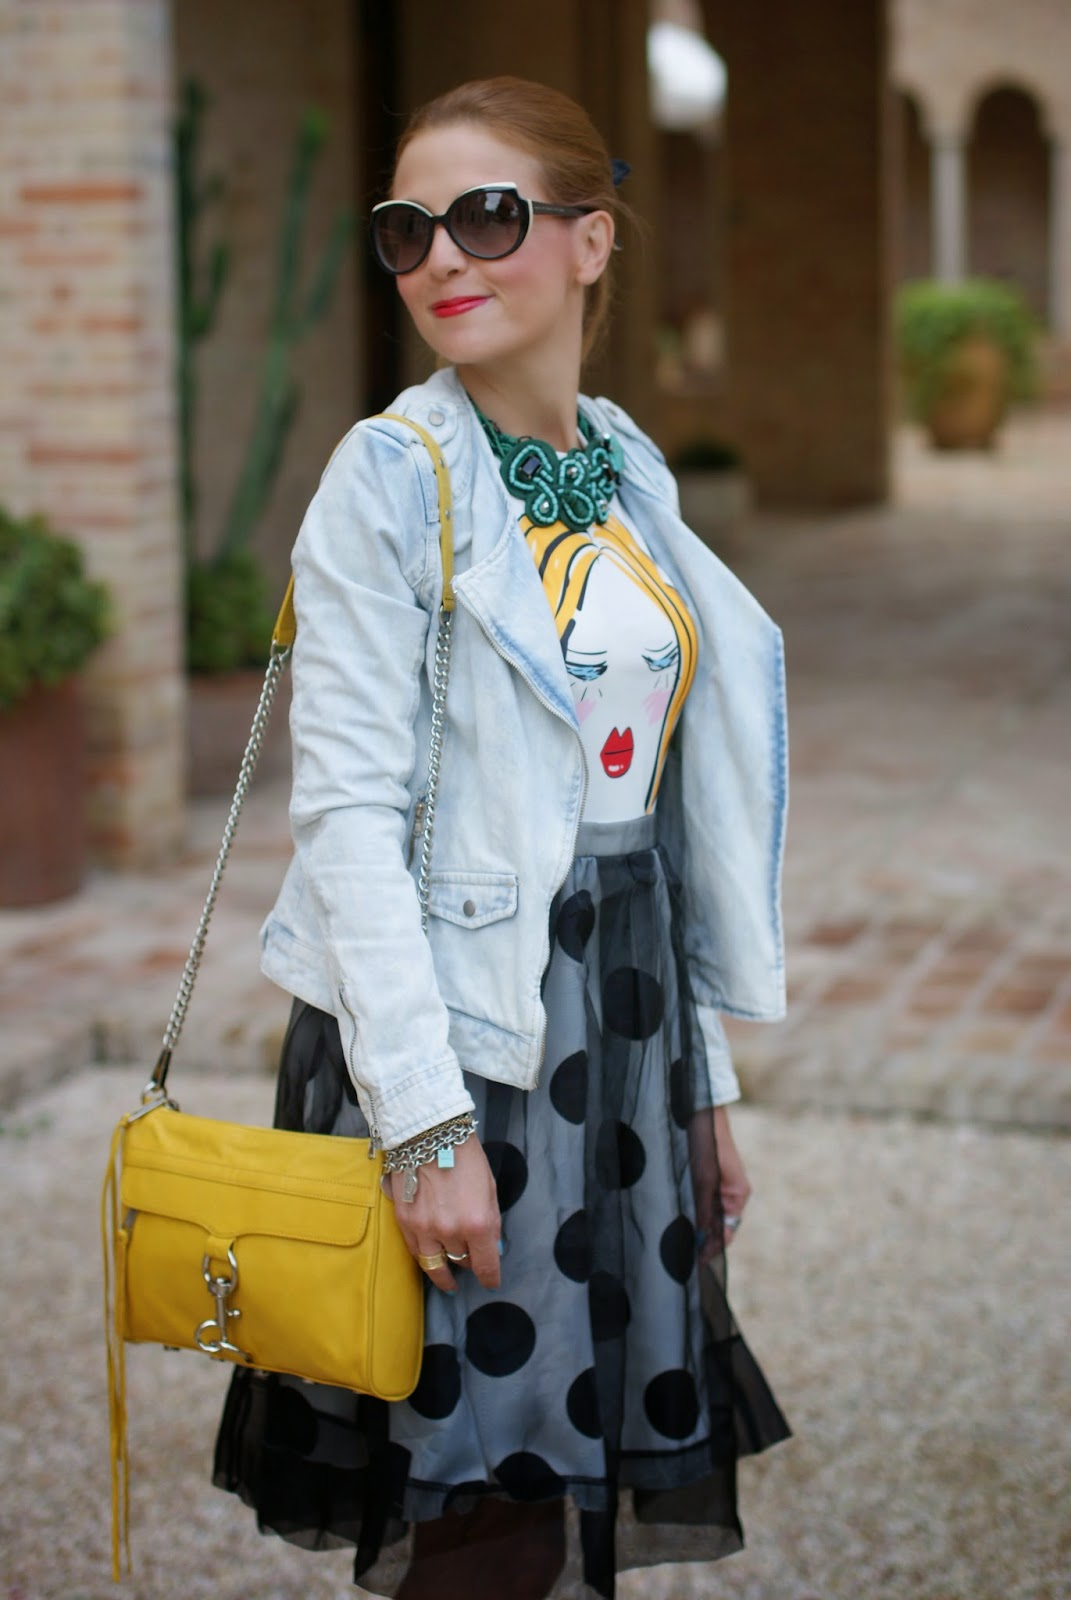 Blackfive lady head dress, Rebecca Minkoff mac clutch, Fashion and Cookies, fashion blogger